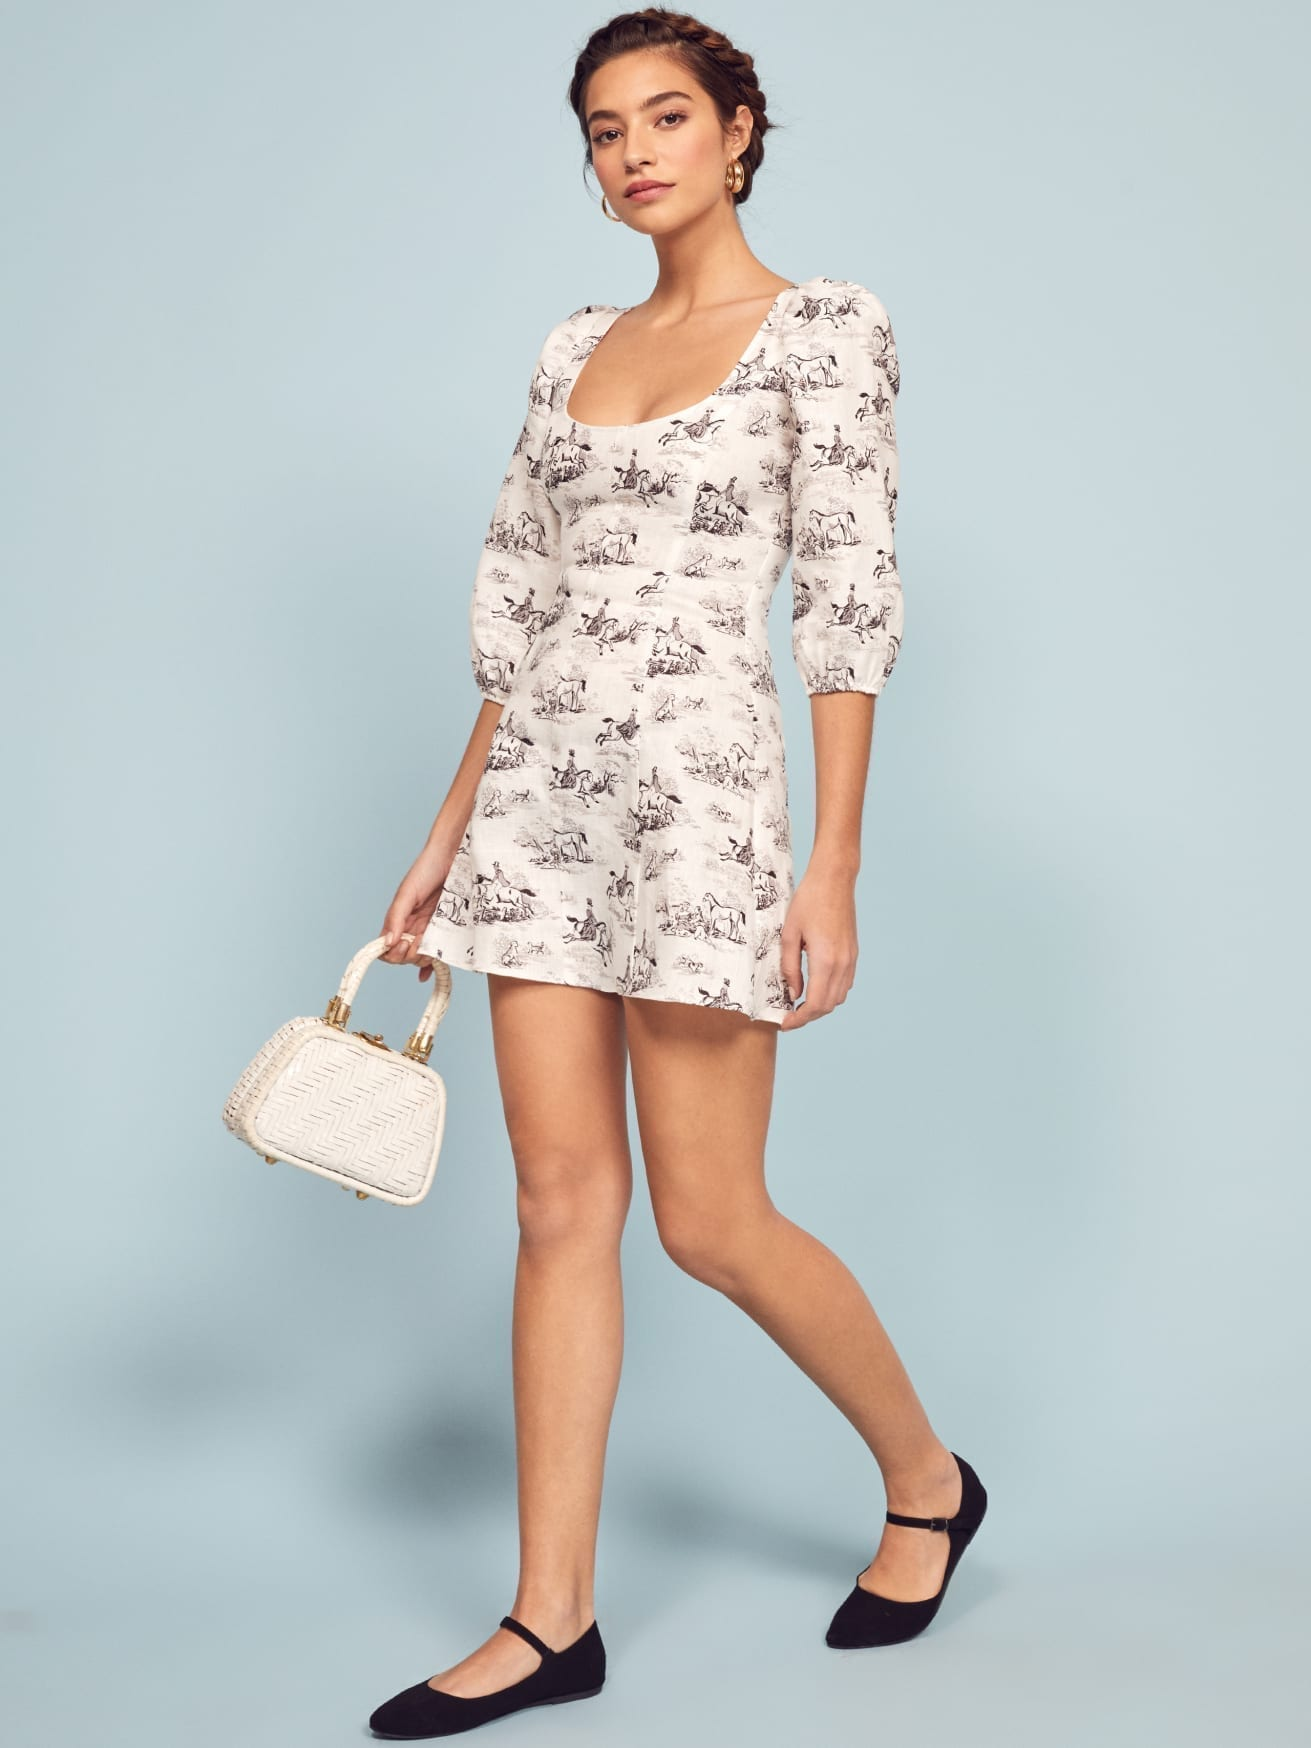 REFORMATION Maxine Ivory Dress